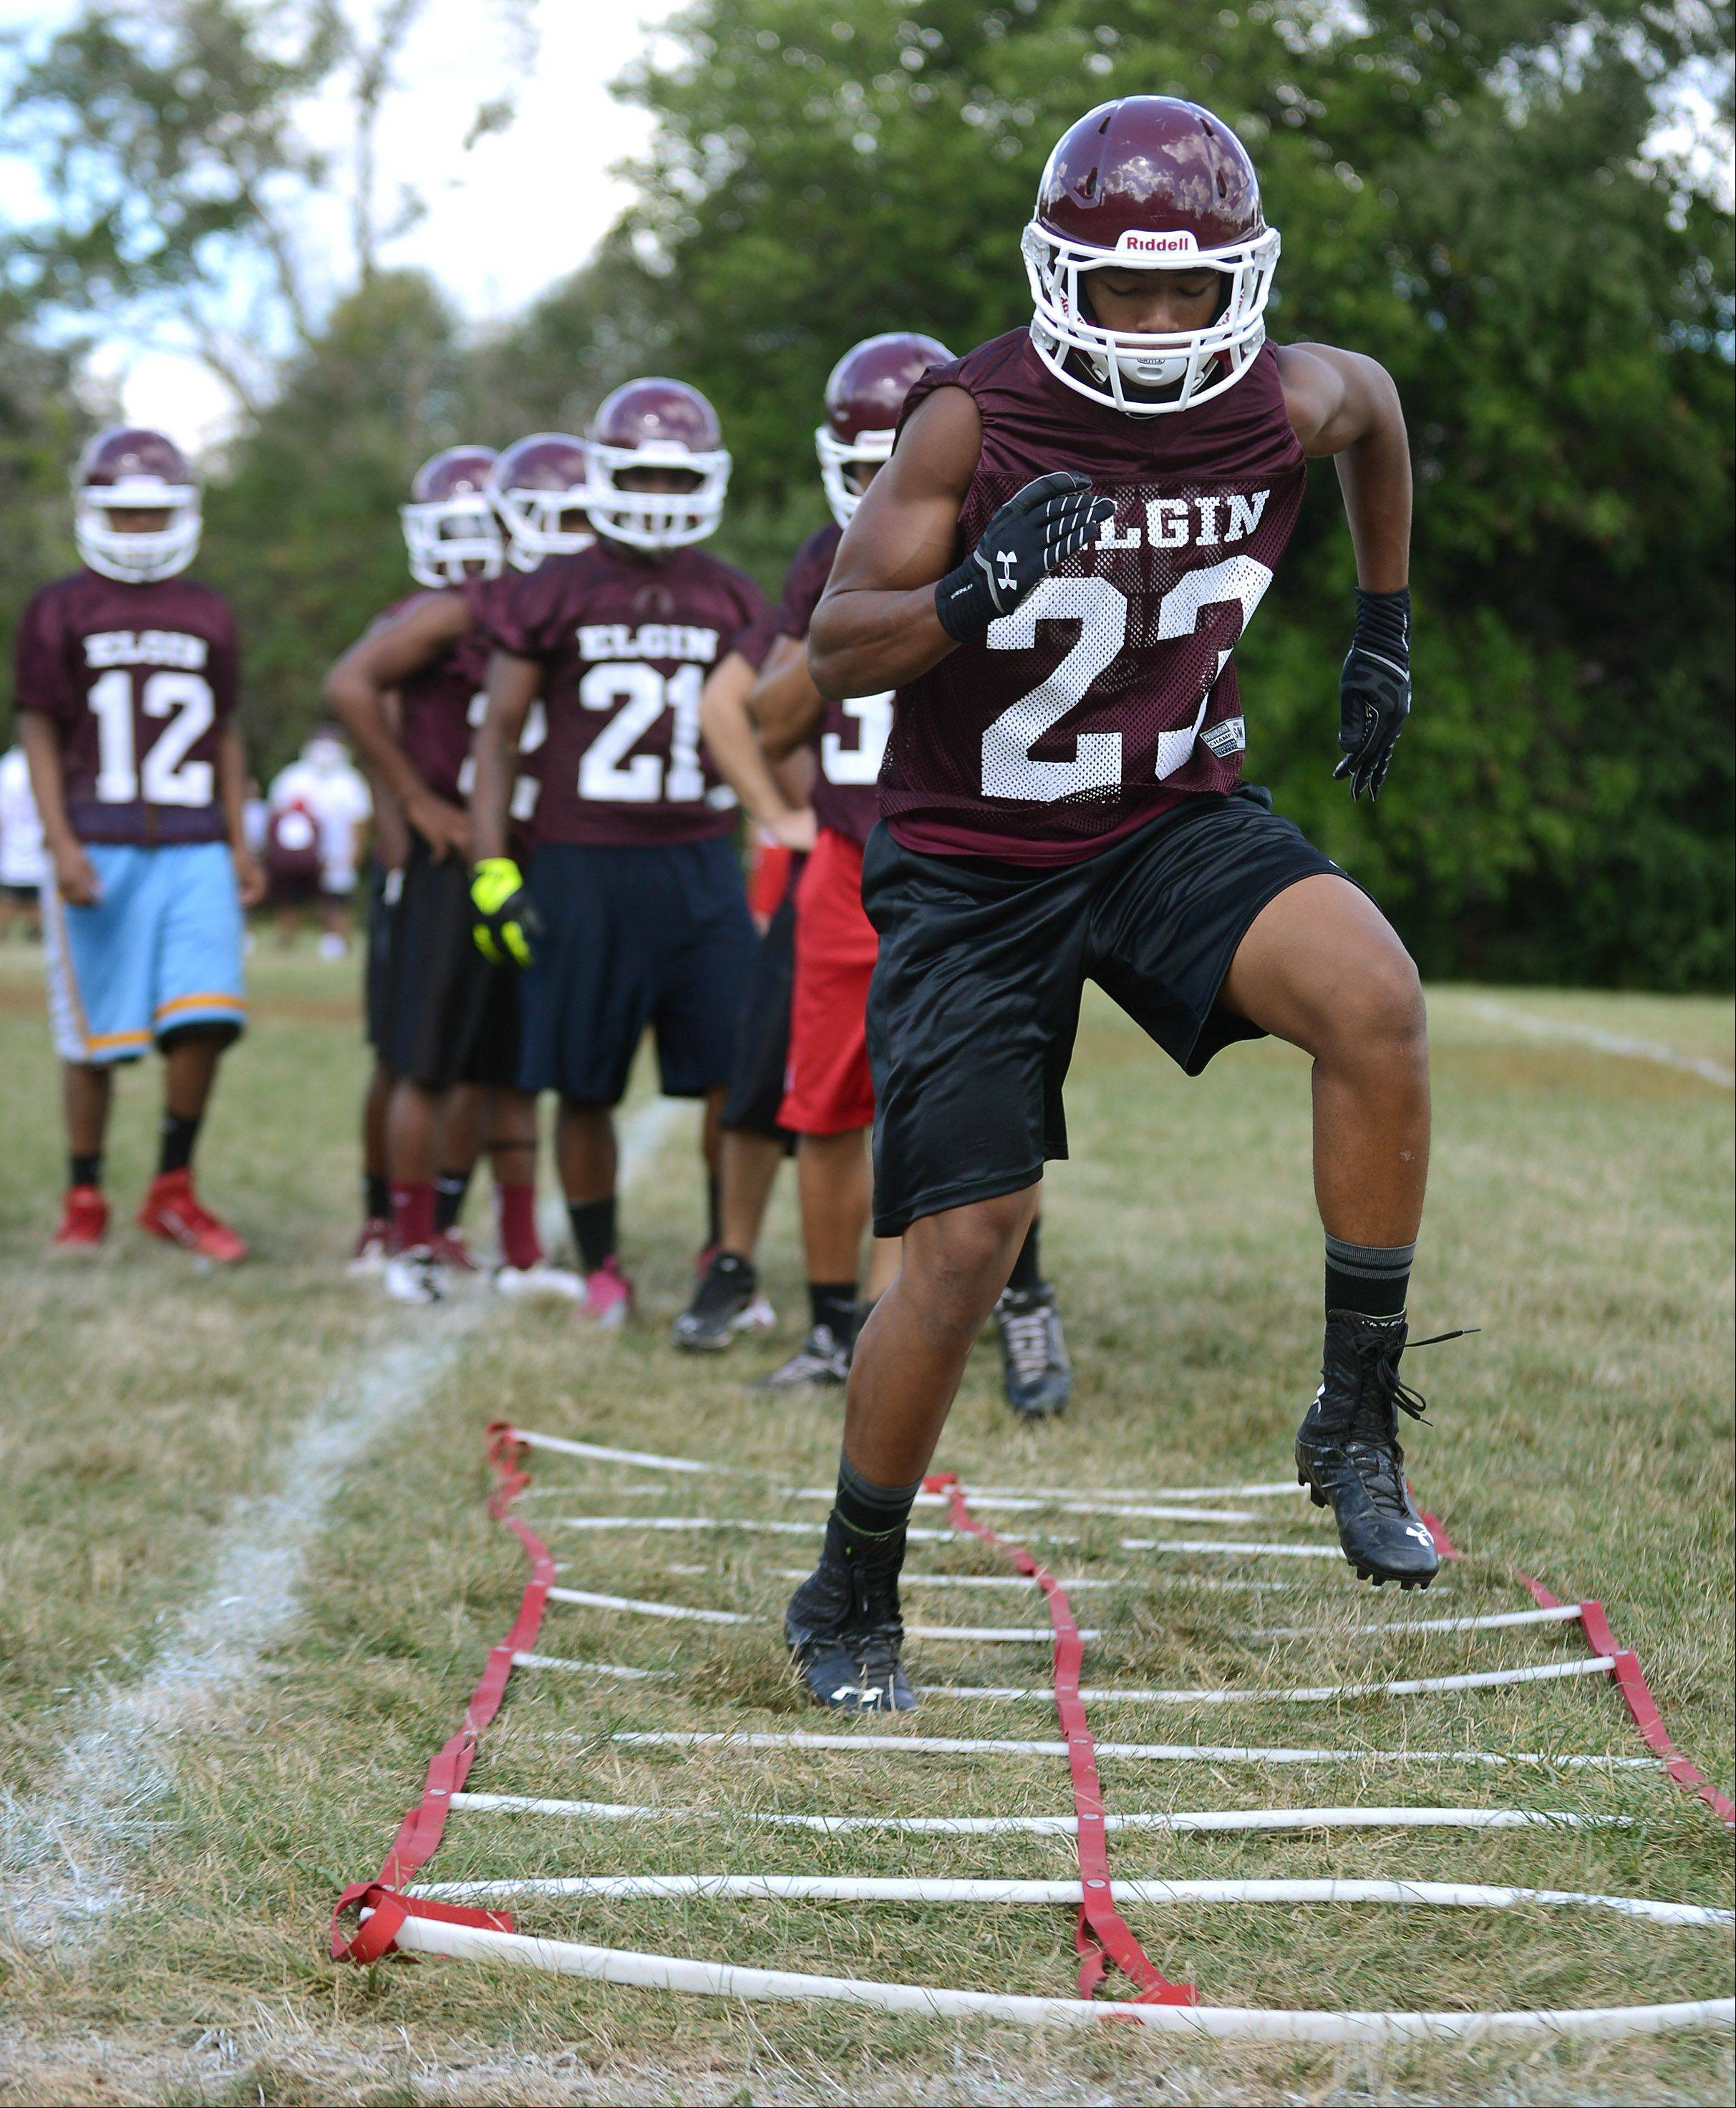 Jordan Smith runs the ladder during the first day of fall football practice at Elgin High School Wednesday.